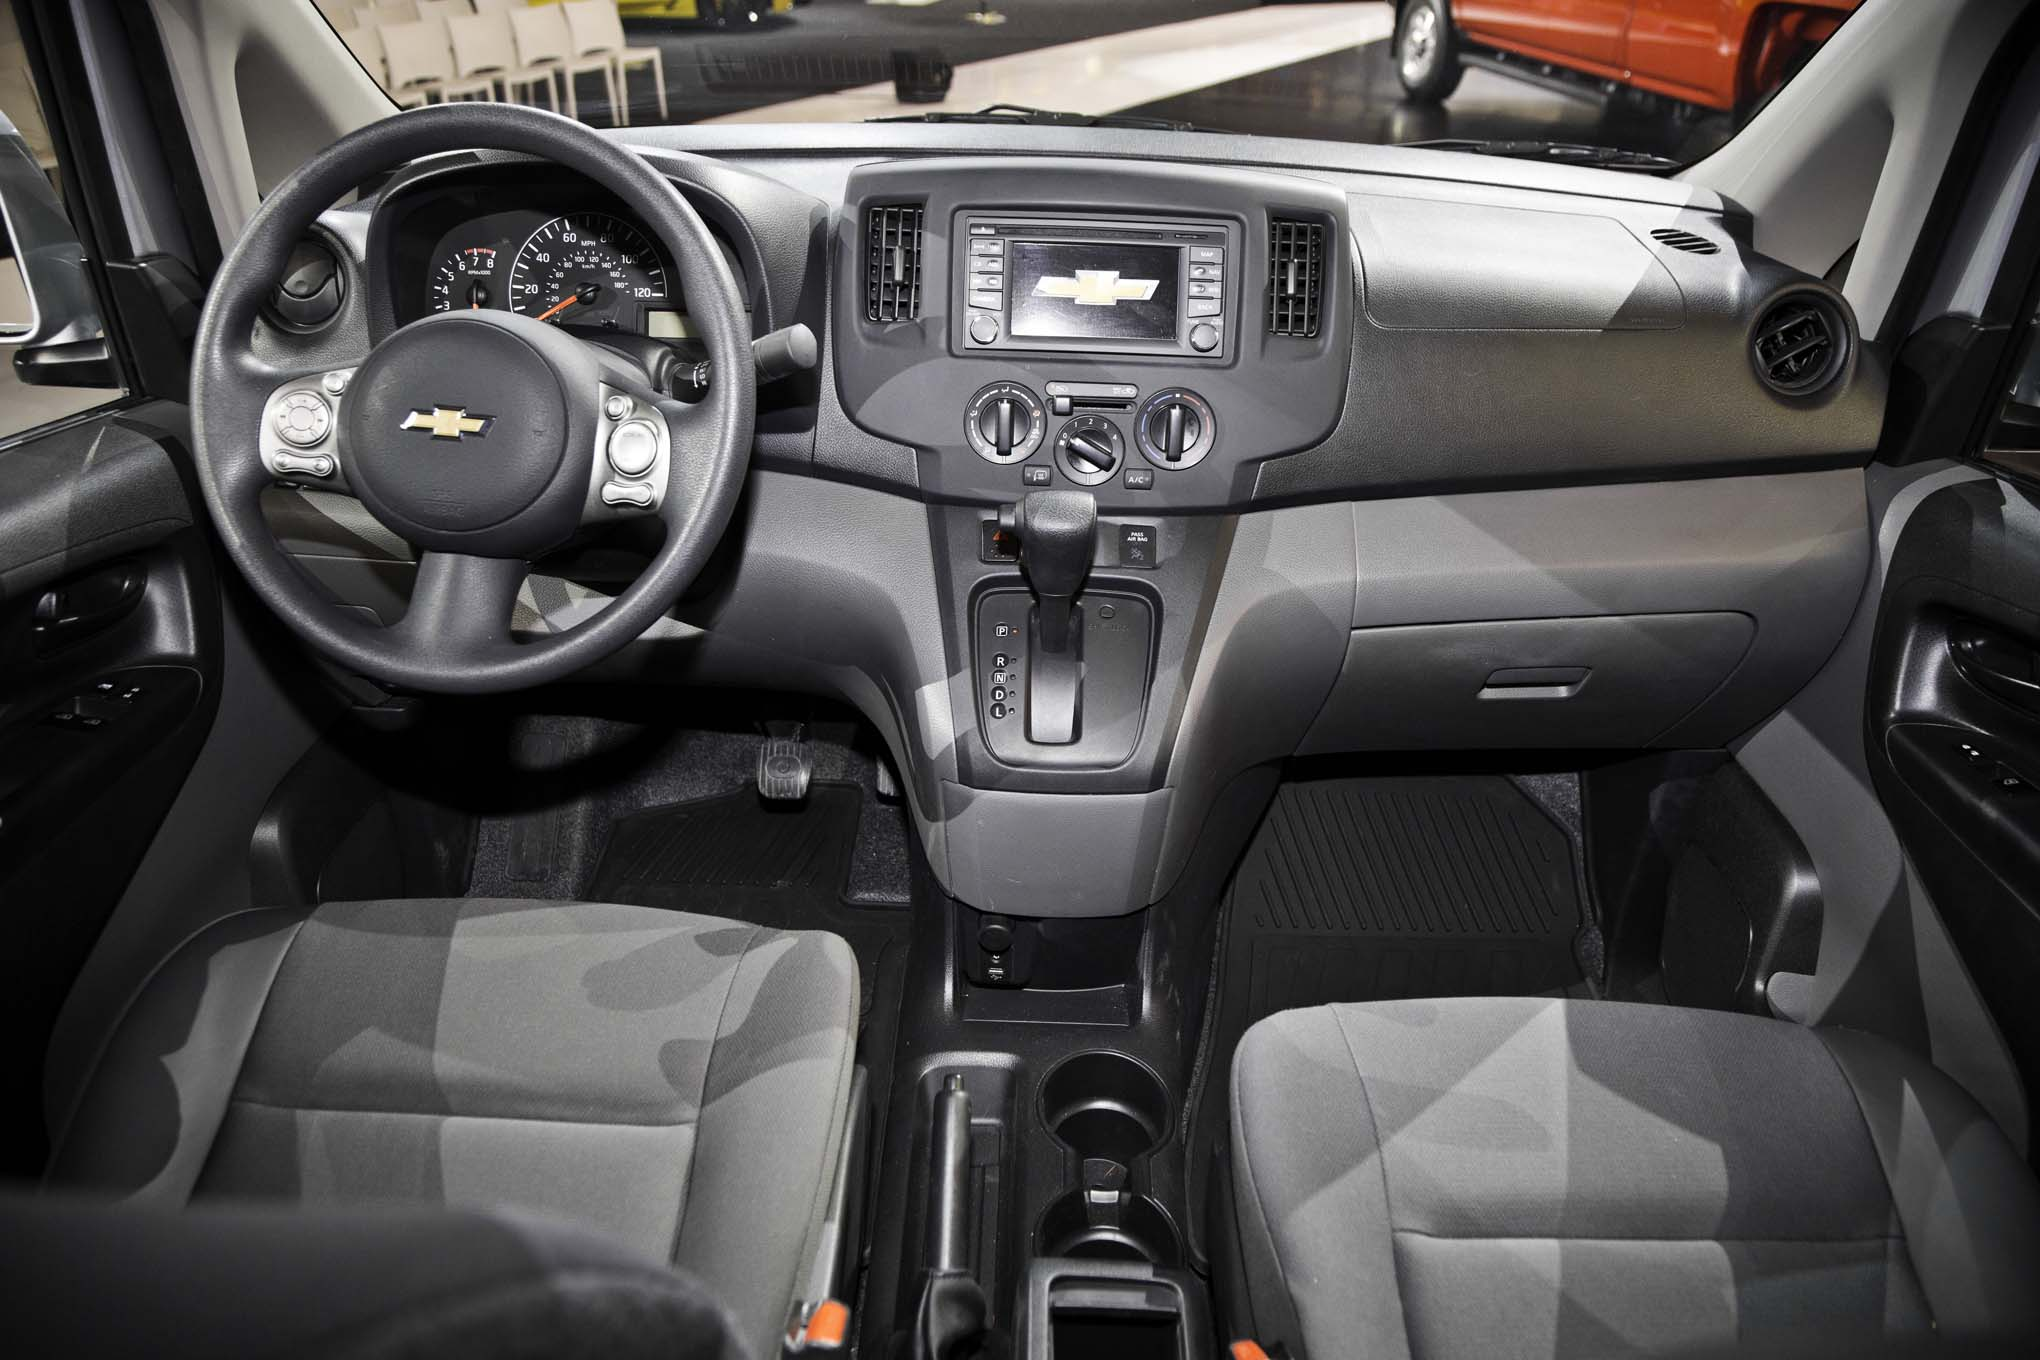 2015 Chevrolet City Express Small Cargo Van Review 468 Cars